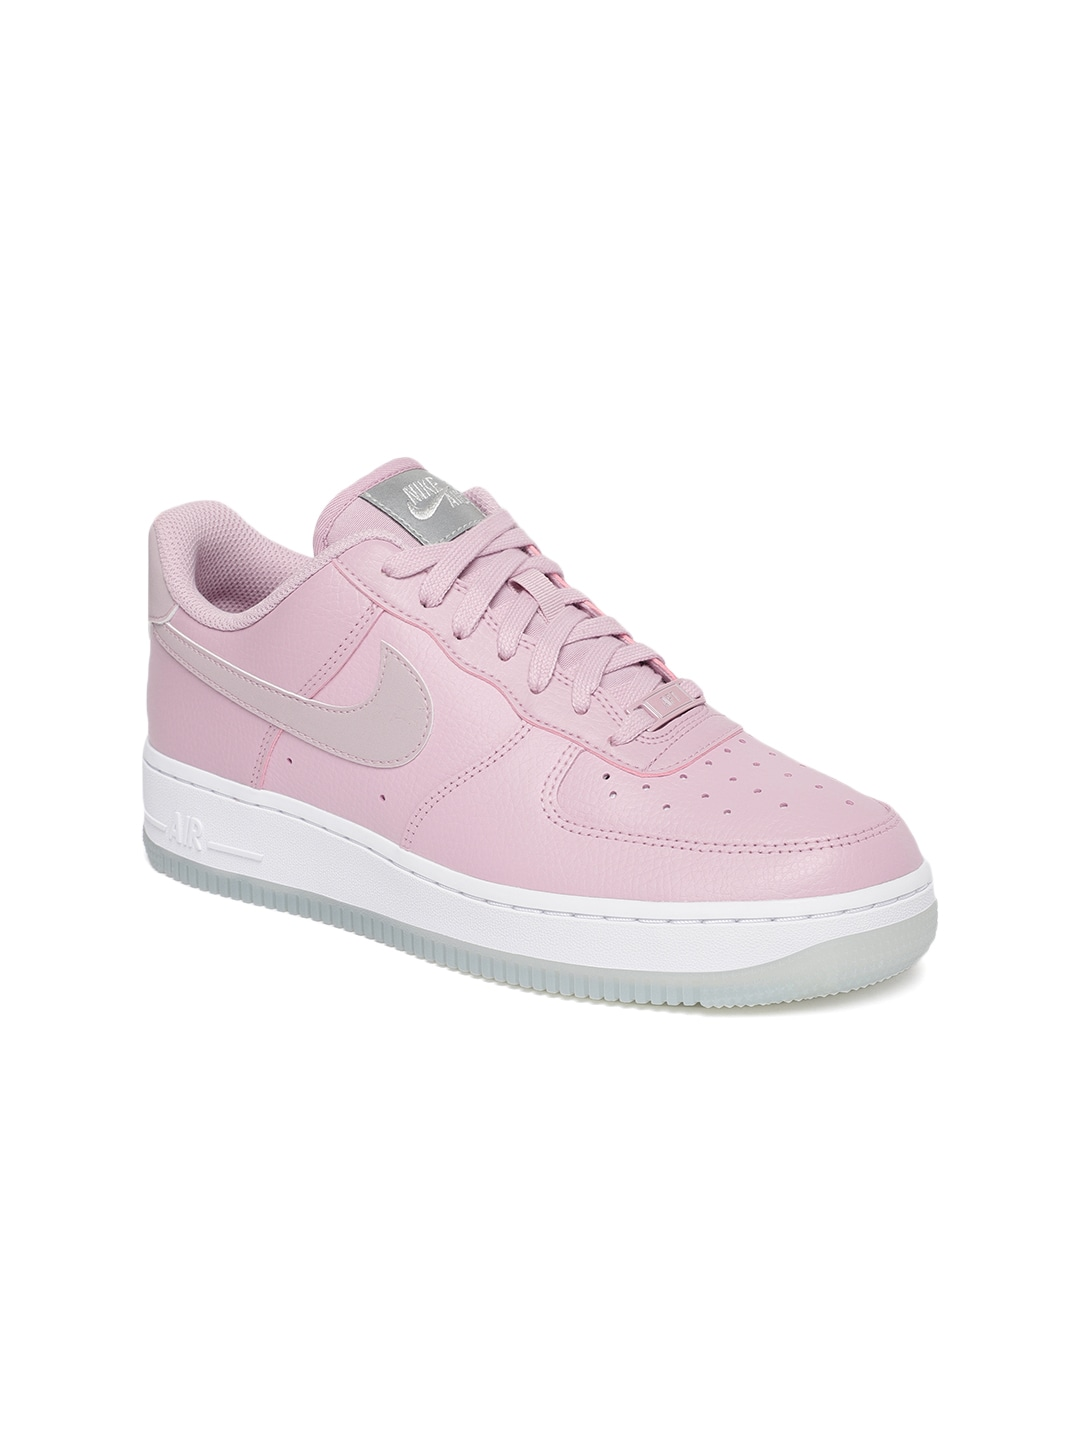 timeless design aab47 6f046 Nike Air Force 1 Casual Shoes - Buy Nike Air Force 1 Casual Shoes online in  India